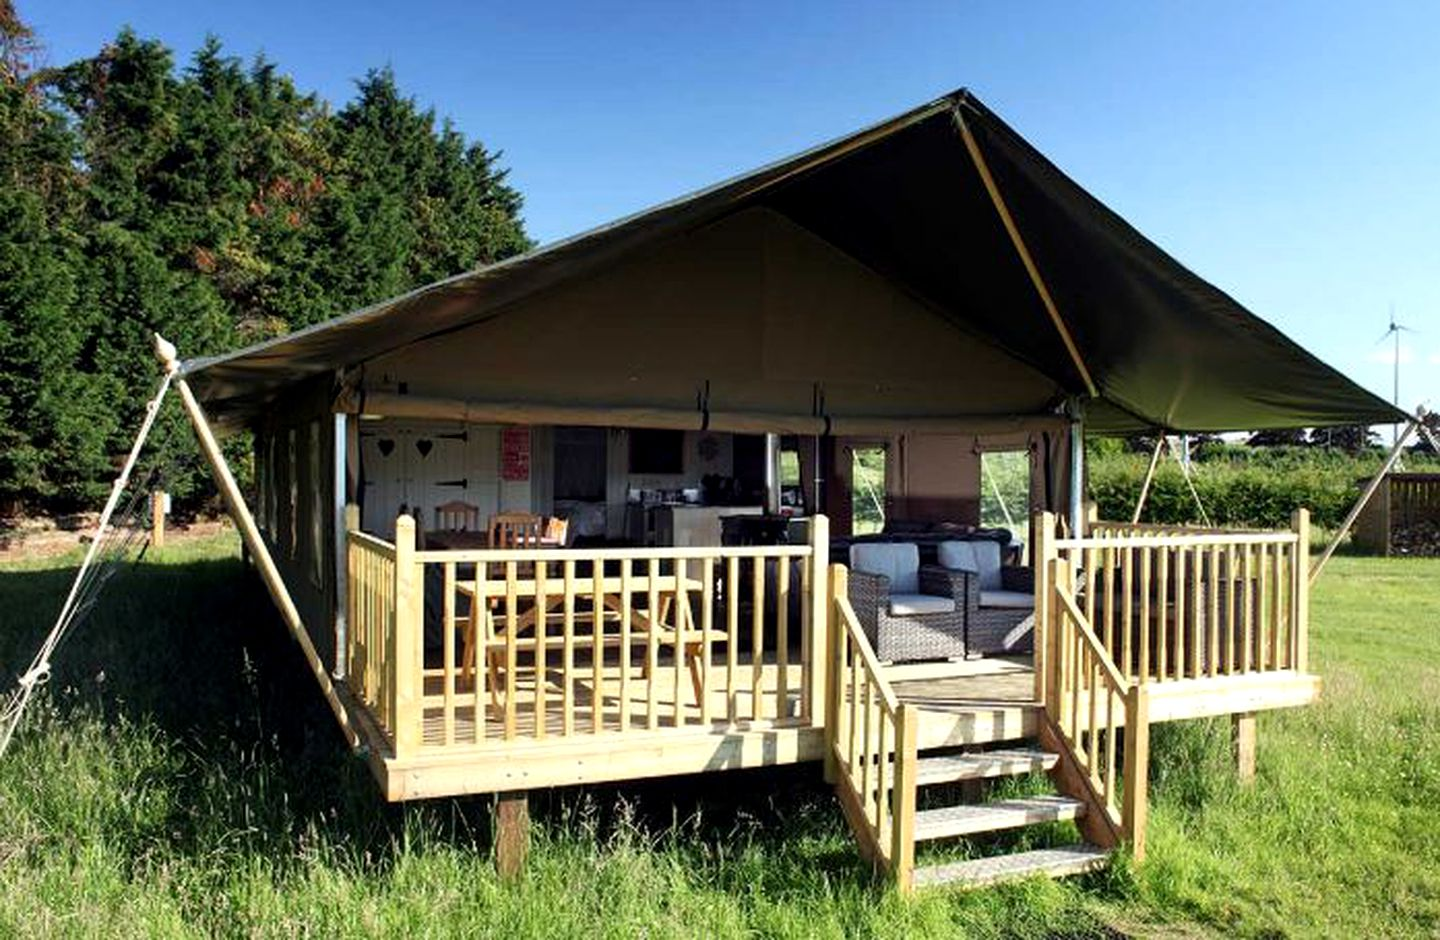 Safari Tents (Hunstanton, England, United Kingdom)